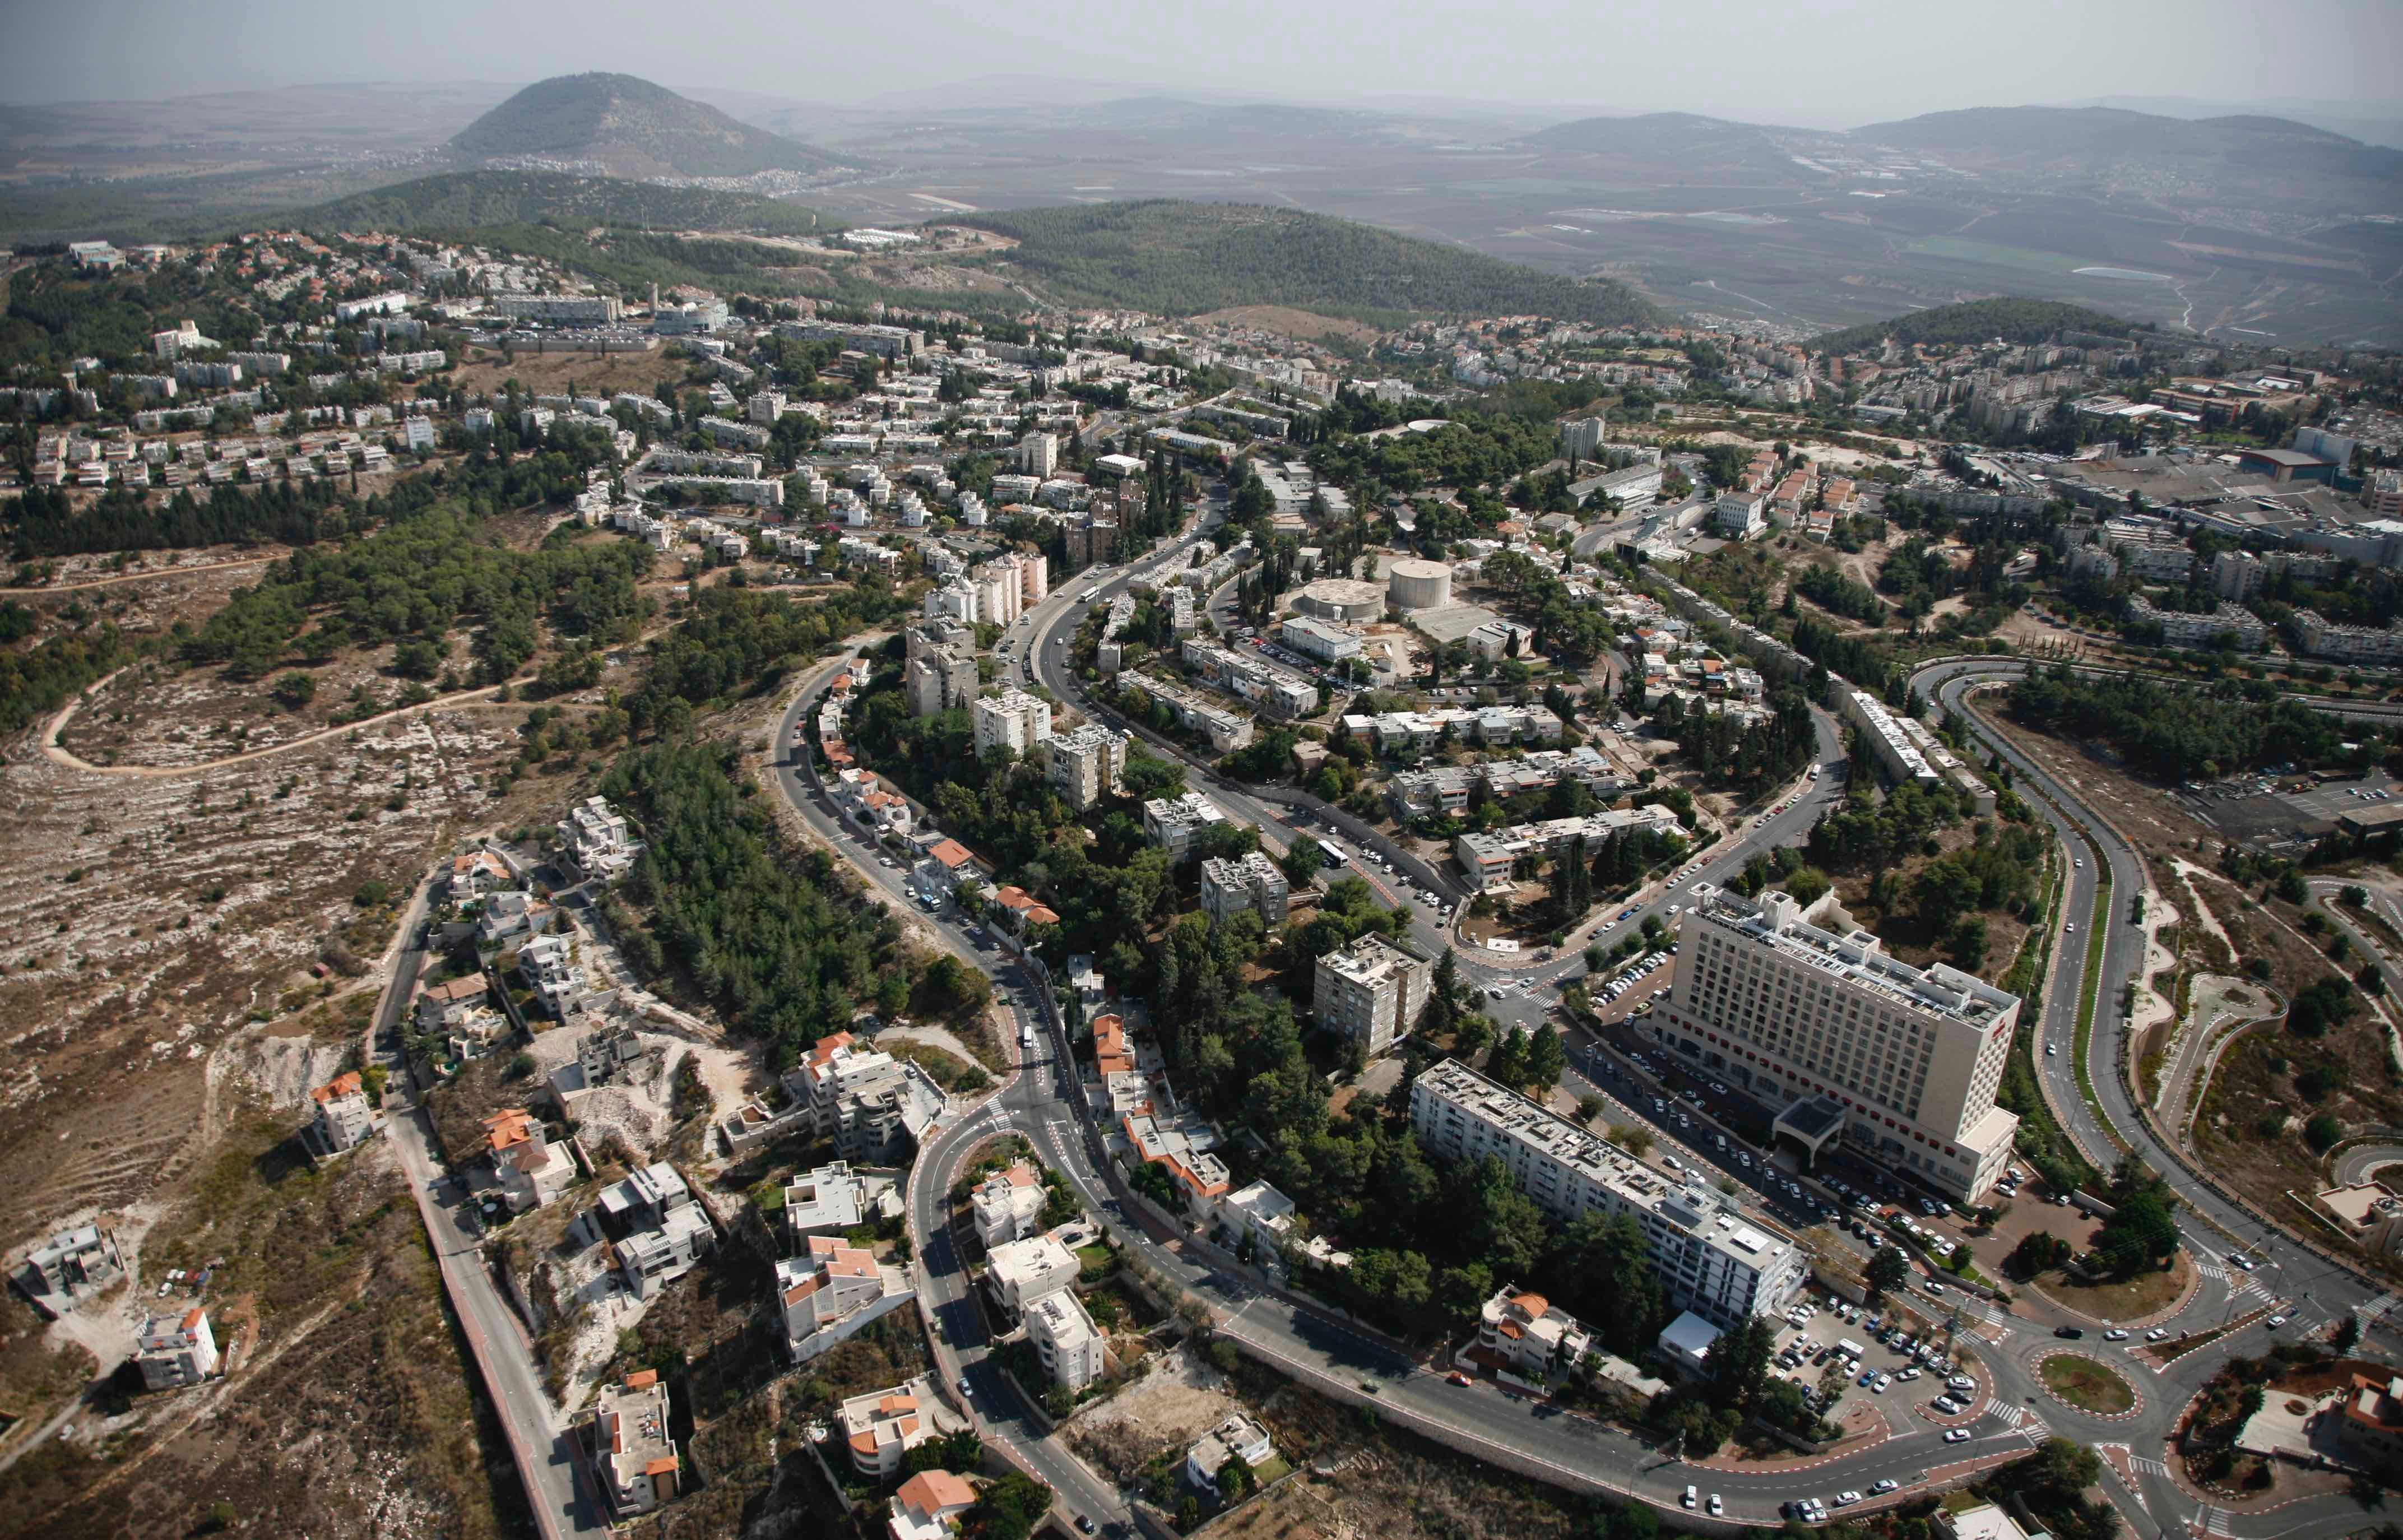 Nof HaGalil, a city that changed its name from Nazareth Illit (Upper Nazareth) in 2019. Aerial photography taken between 2011 and 2015.